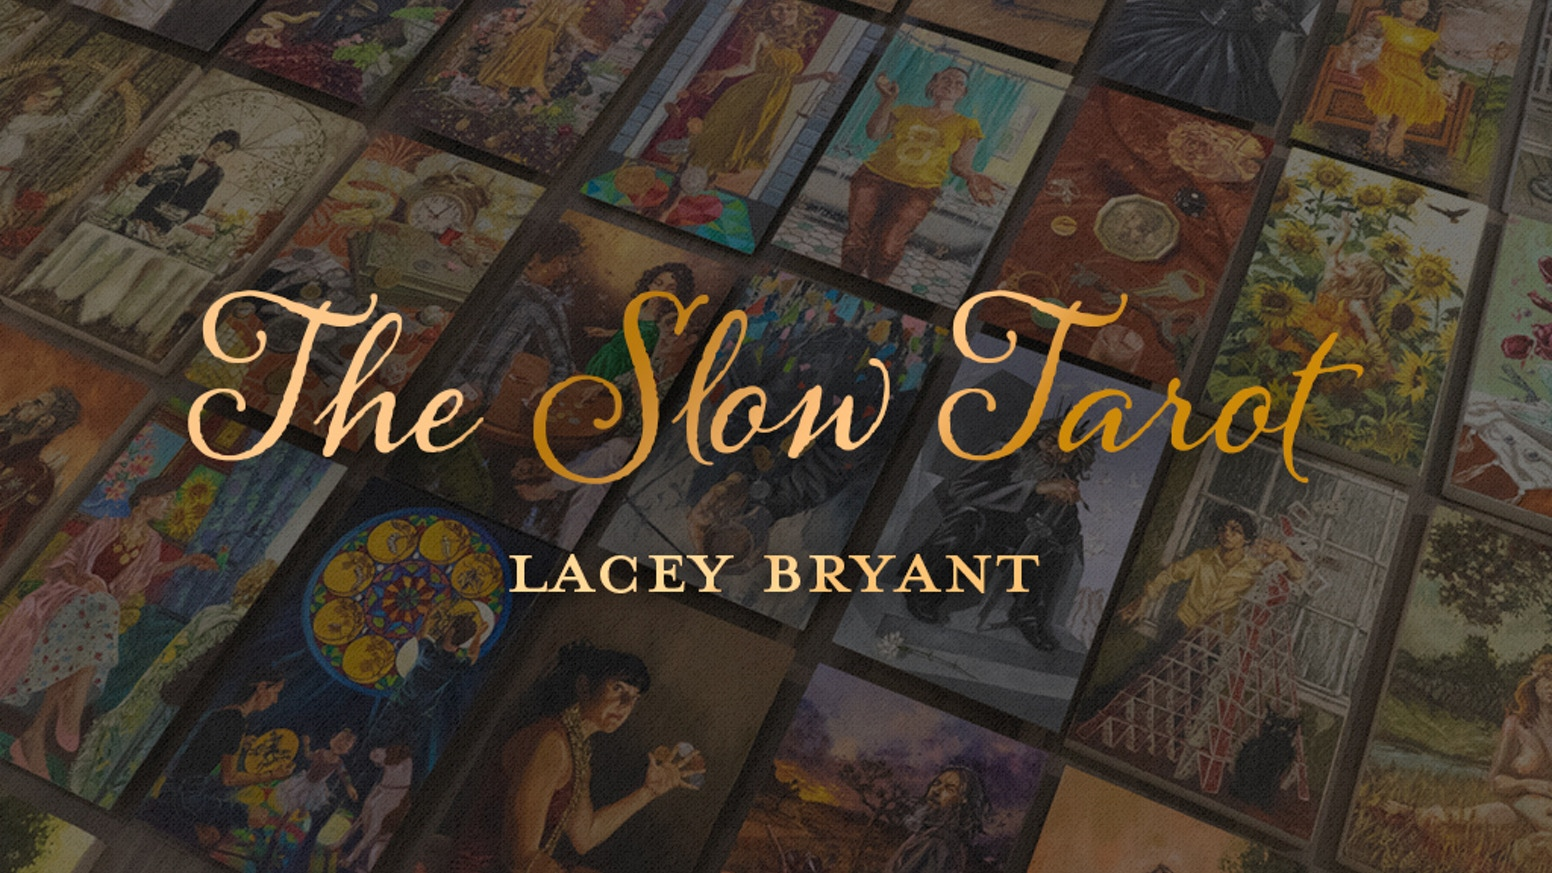 A 78 card tarot deck featuring original oil paintings by artist Lacey Bryant.